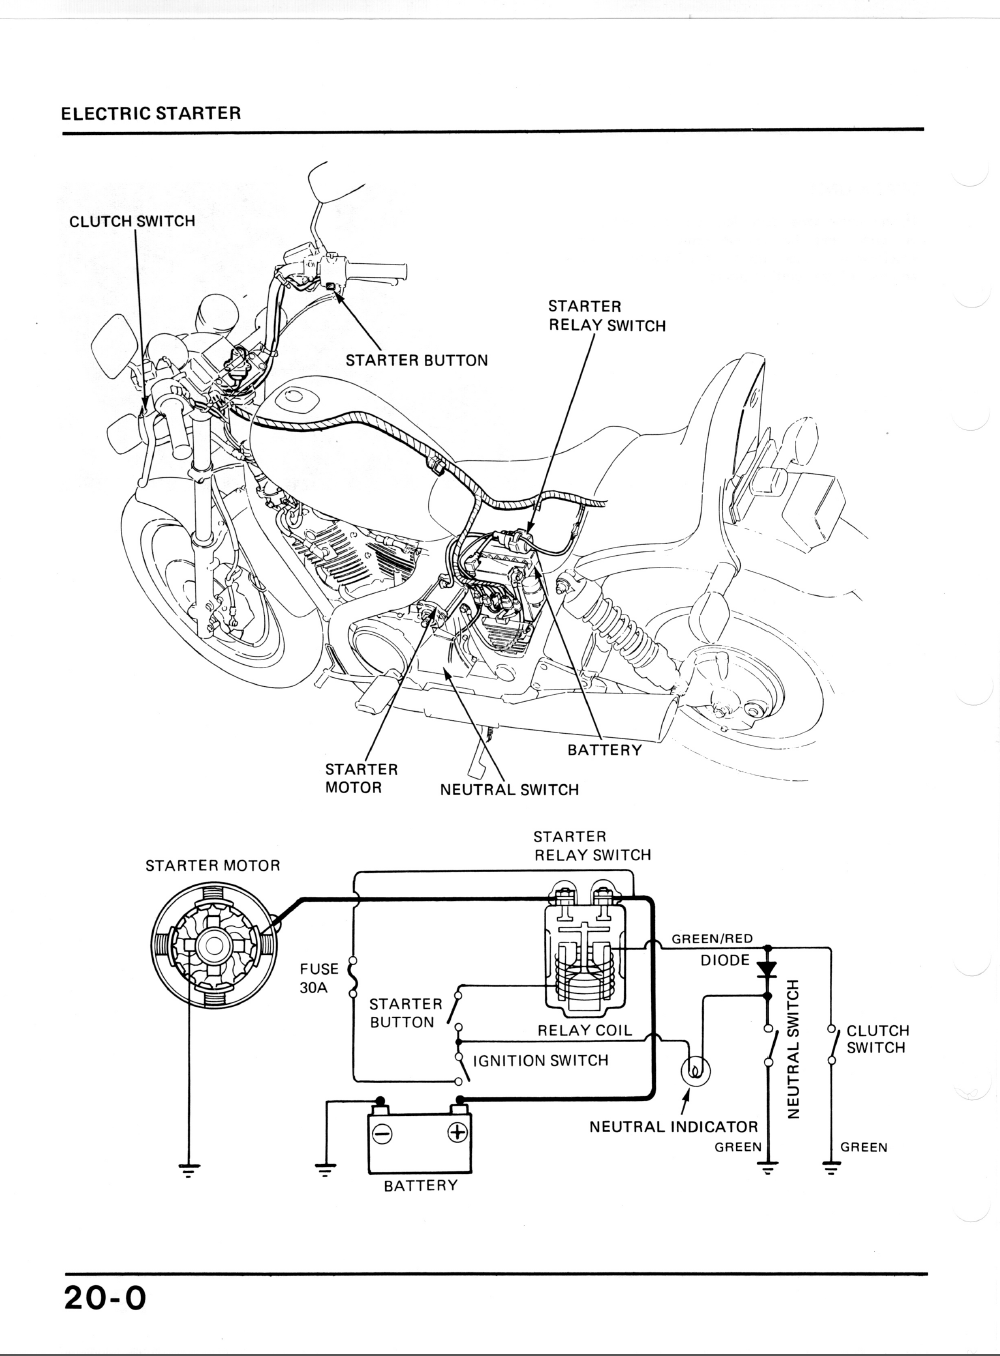 9266d1409799691 1984 honda shadow 700 electric stater 1984 honda shadow 700 1984 honda shadow vt700c wiring diagram at bakdesigns.co